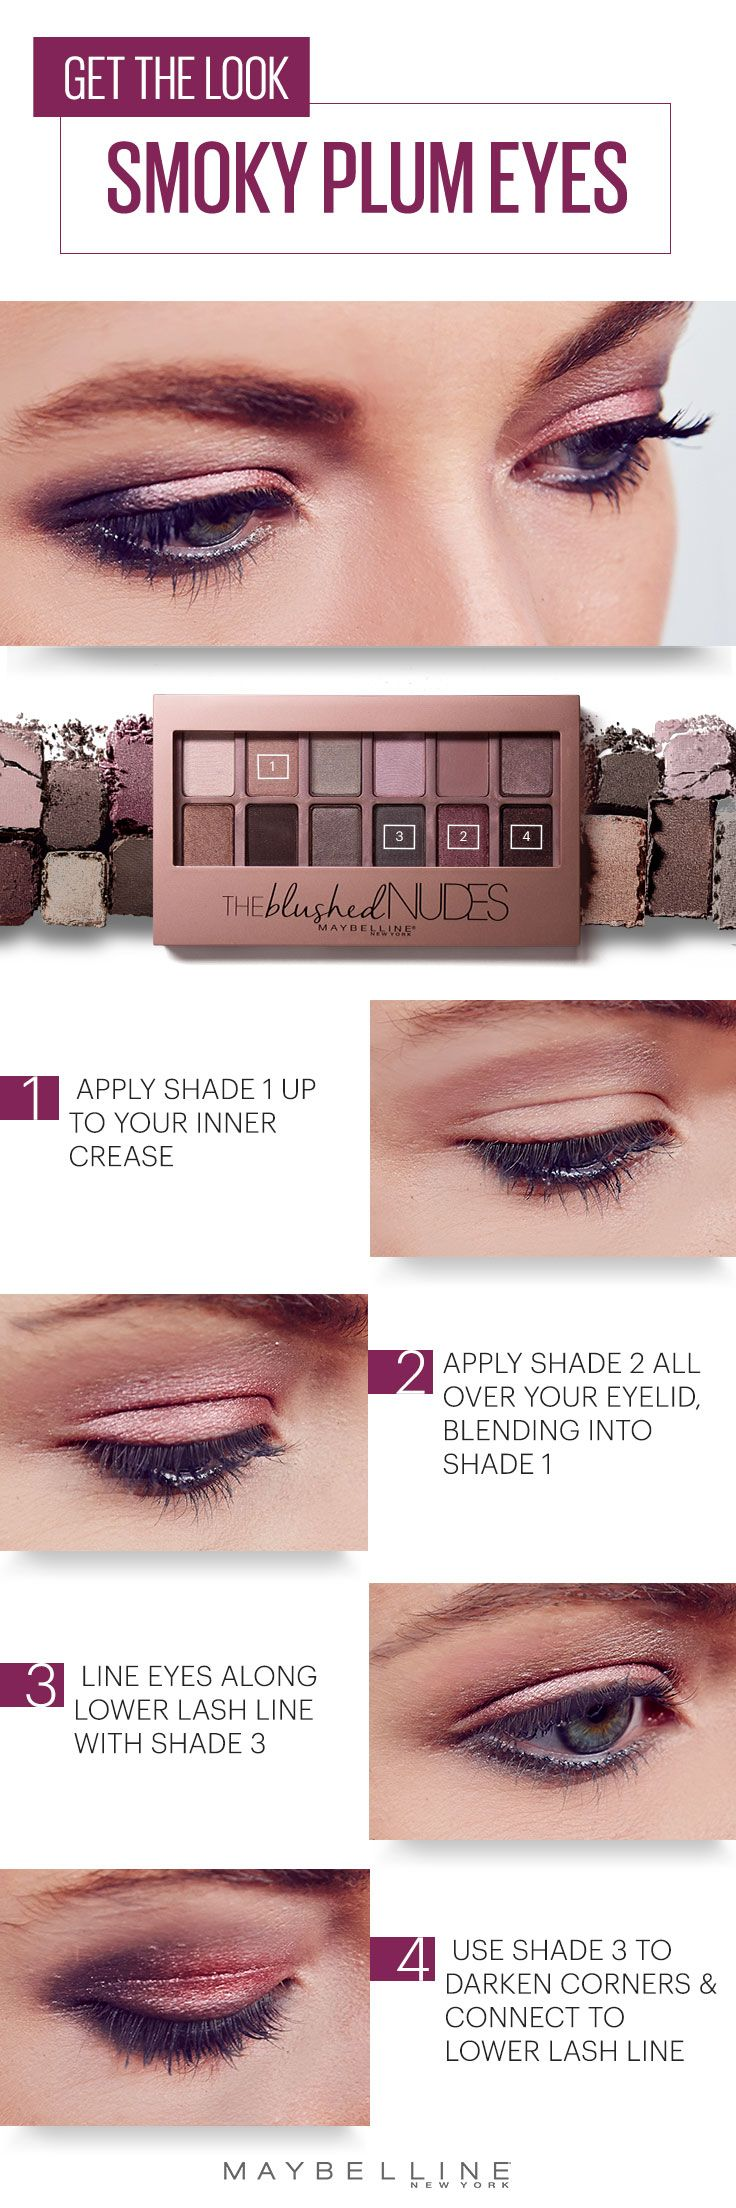 Set those spring nights on fire with this smoky plum eyeshadow tutorial. Get this romantic smoky eye makeup look with the Maybelline Blushed Nudes palette. This step by step will leave you with a beauty look that is perfect for anything from date nights to weekend trips.